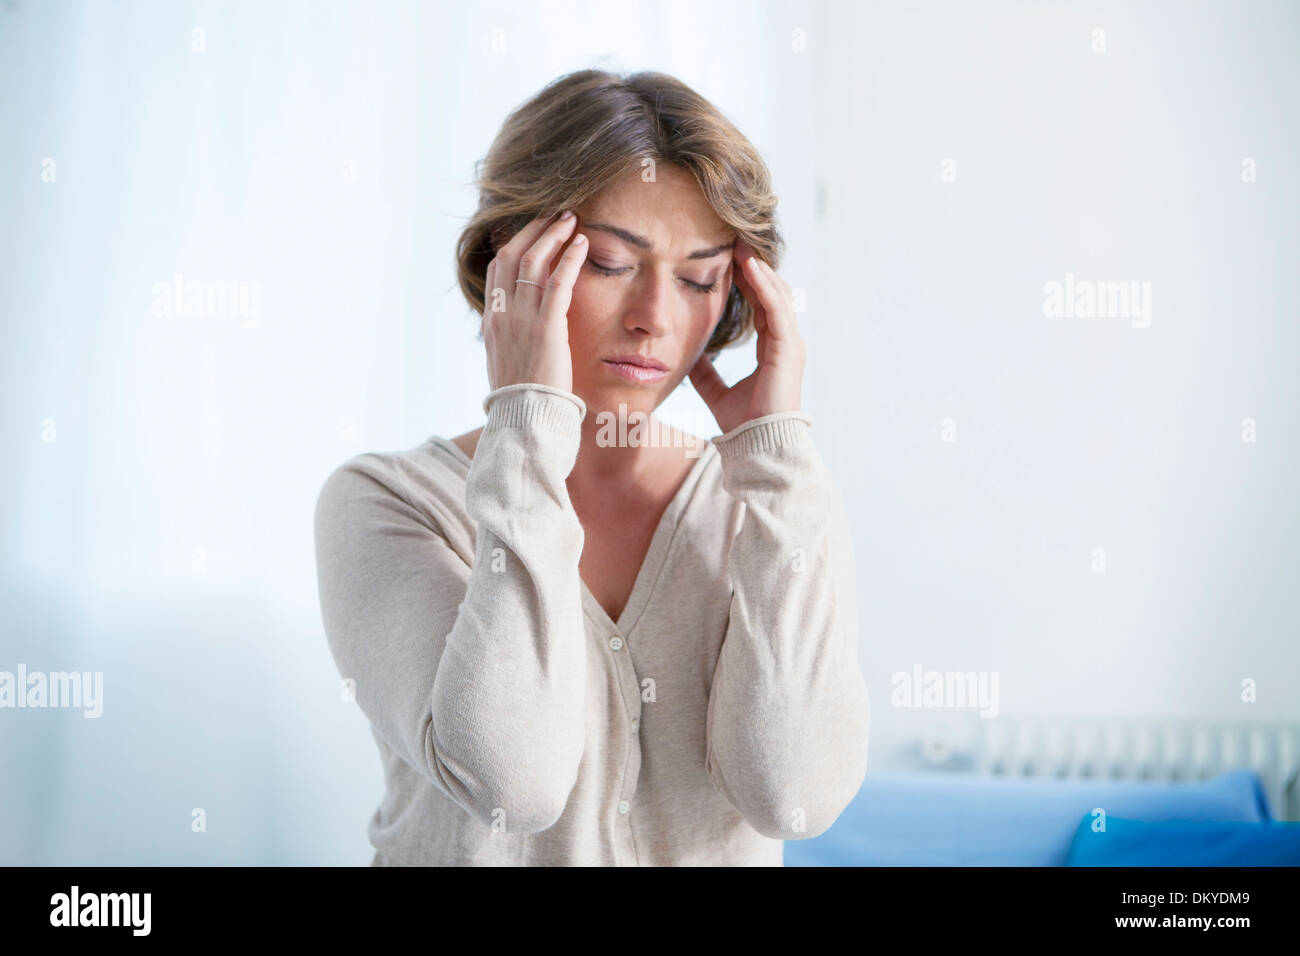 WOMAN WITH HEADACHE - Stock Image